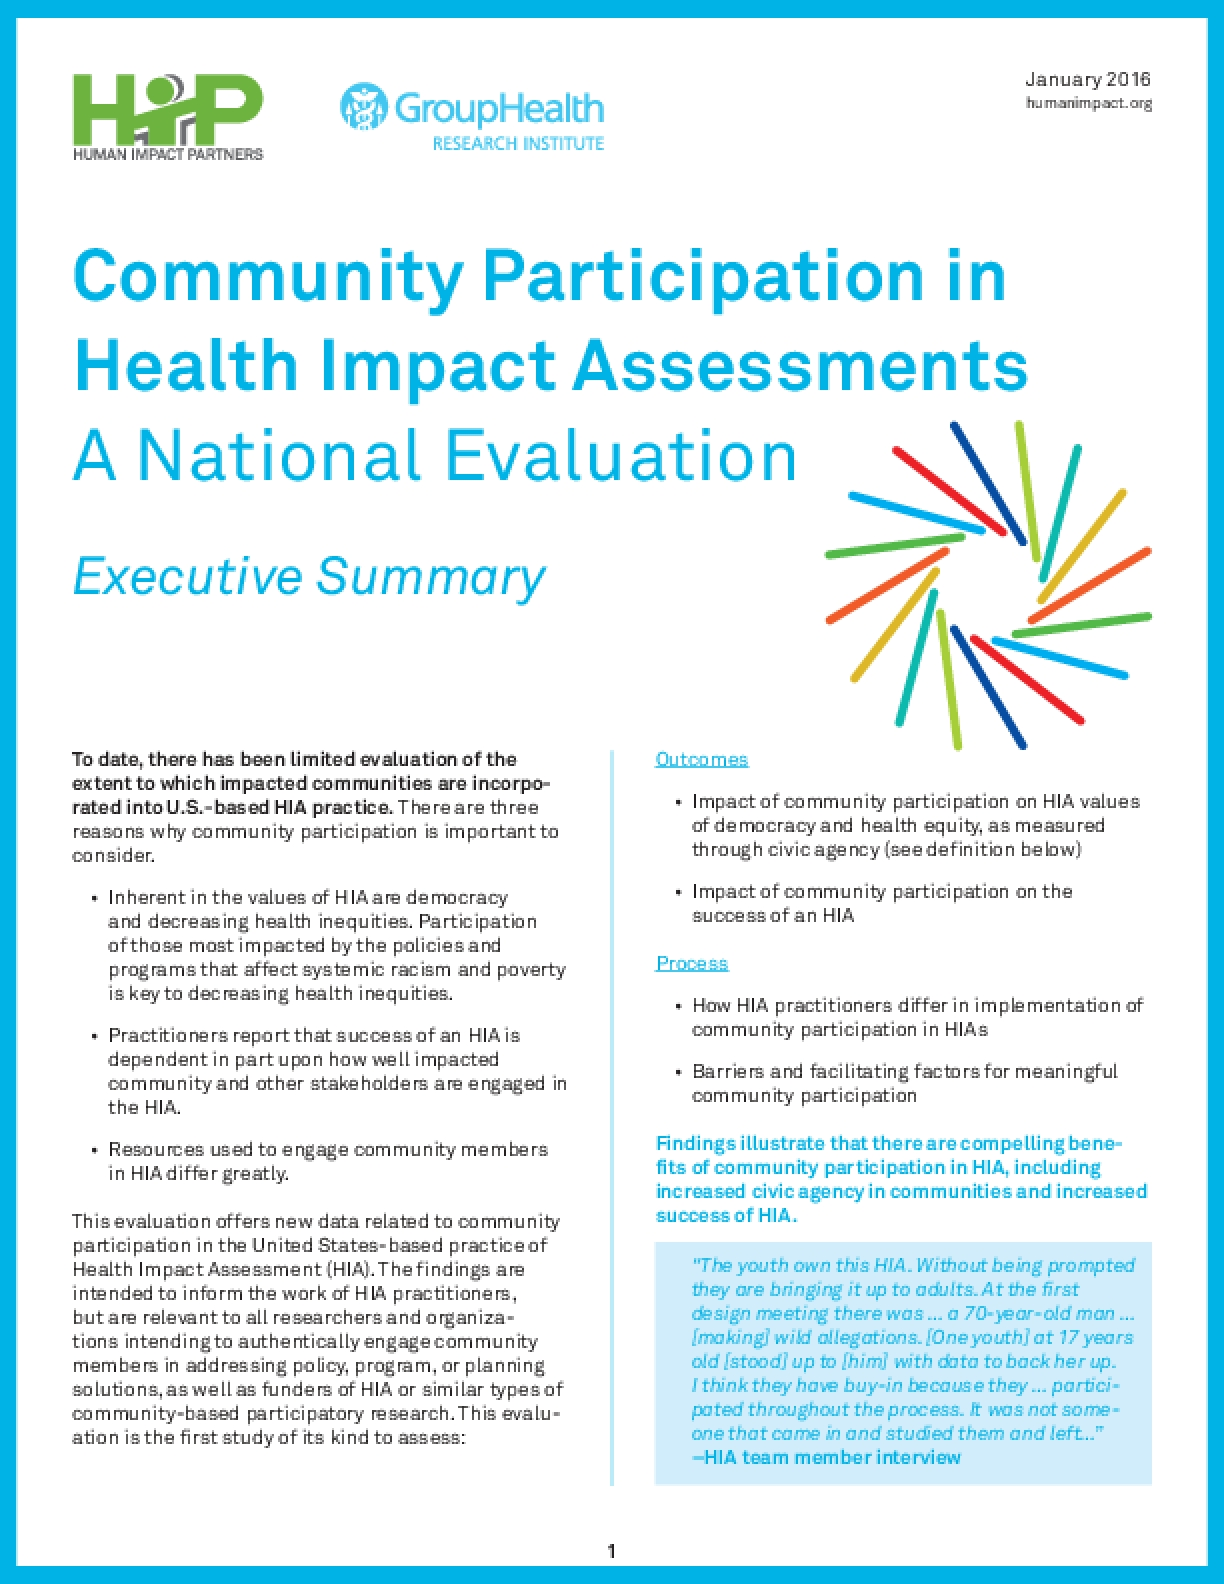 Community Participation in Health Impact Assessments A National Evaluation (Executive Summary)